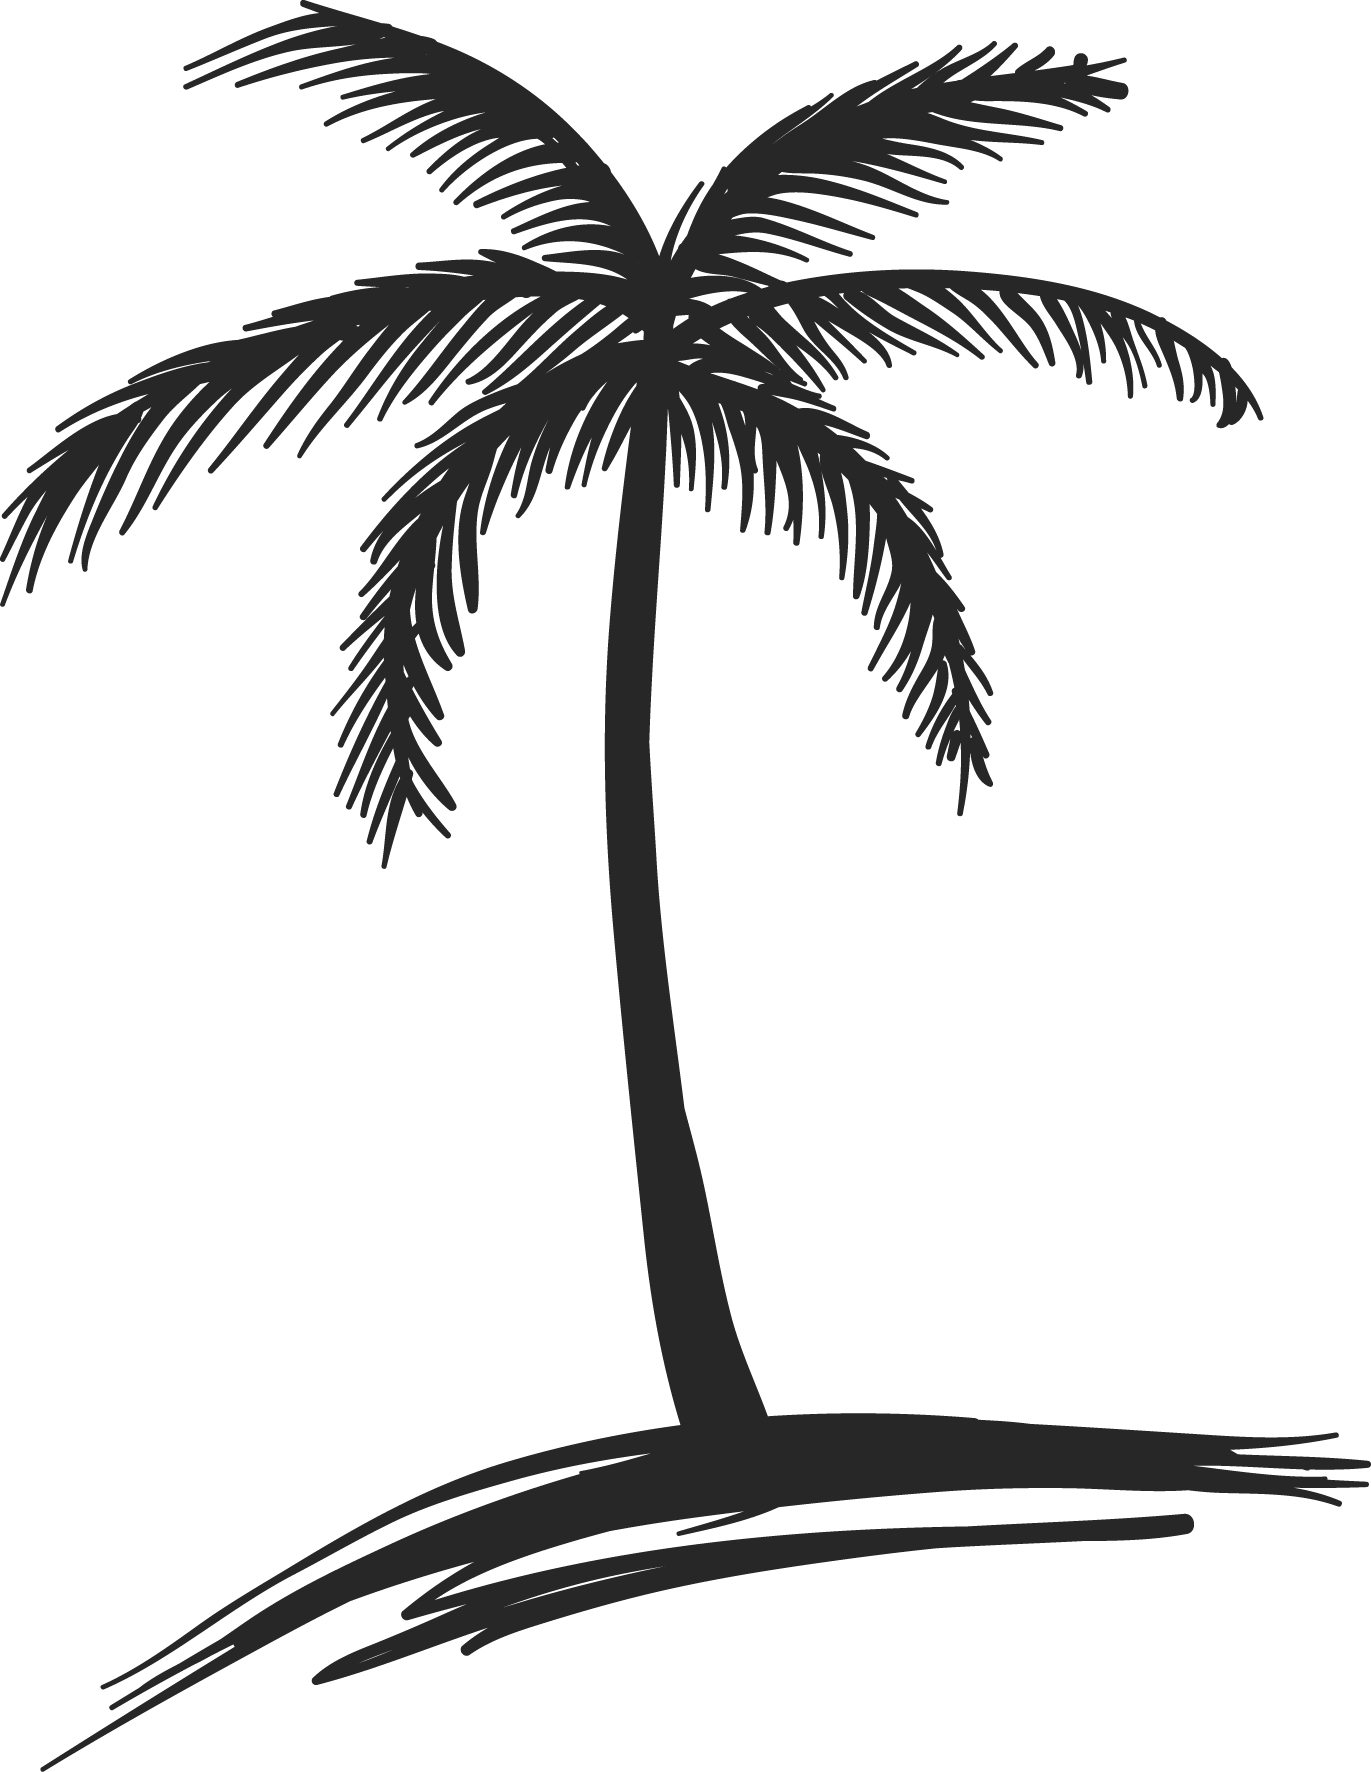 Coconut Tree Clipart Black And White - ClipArt Best